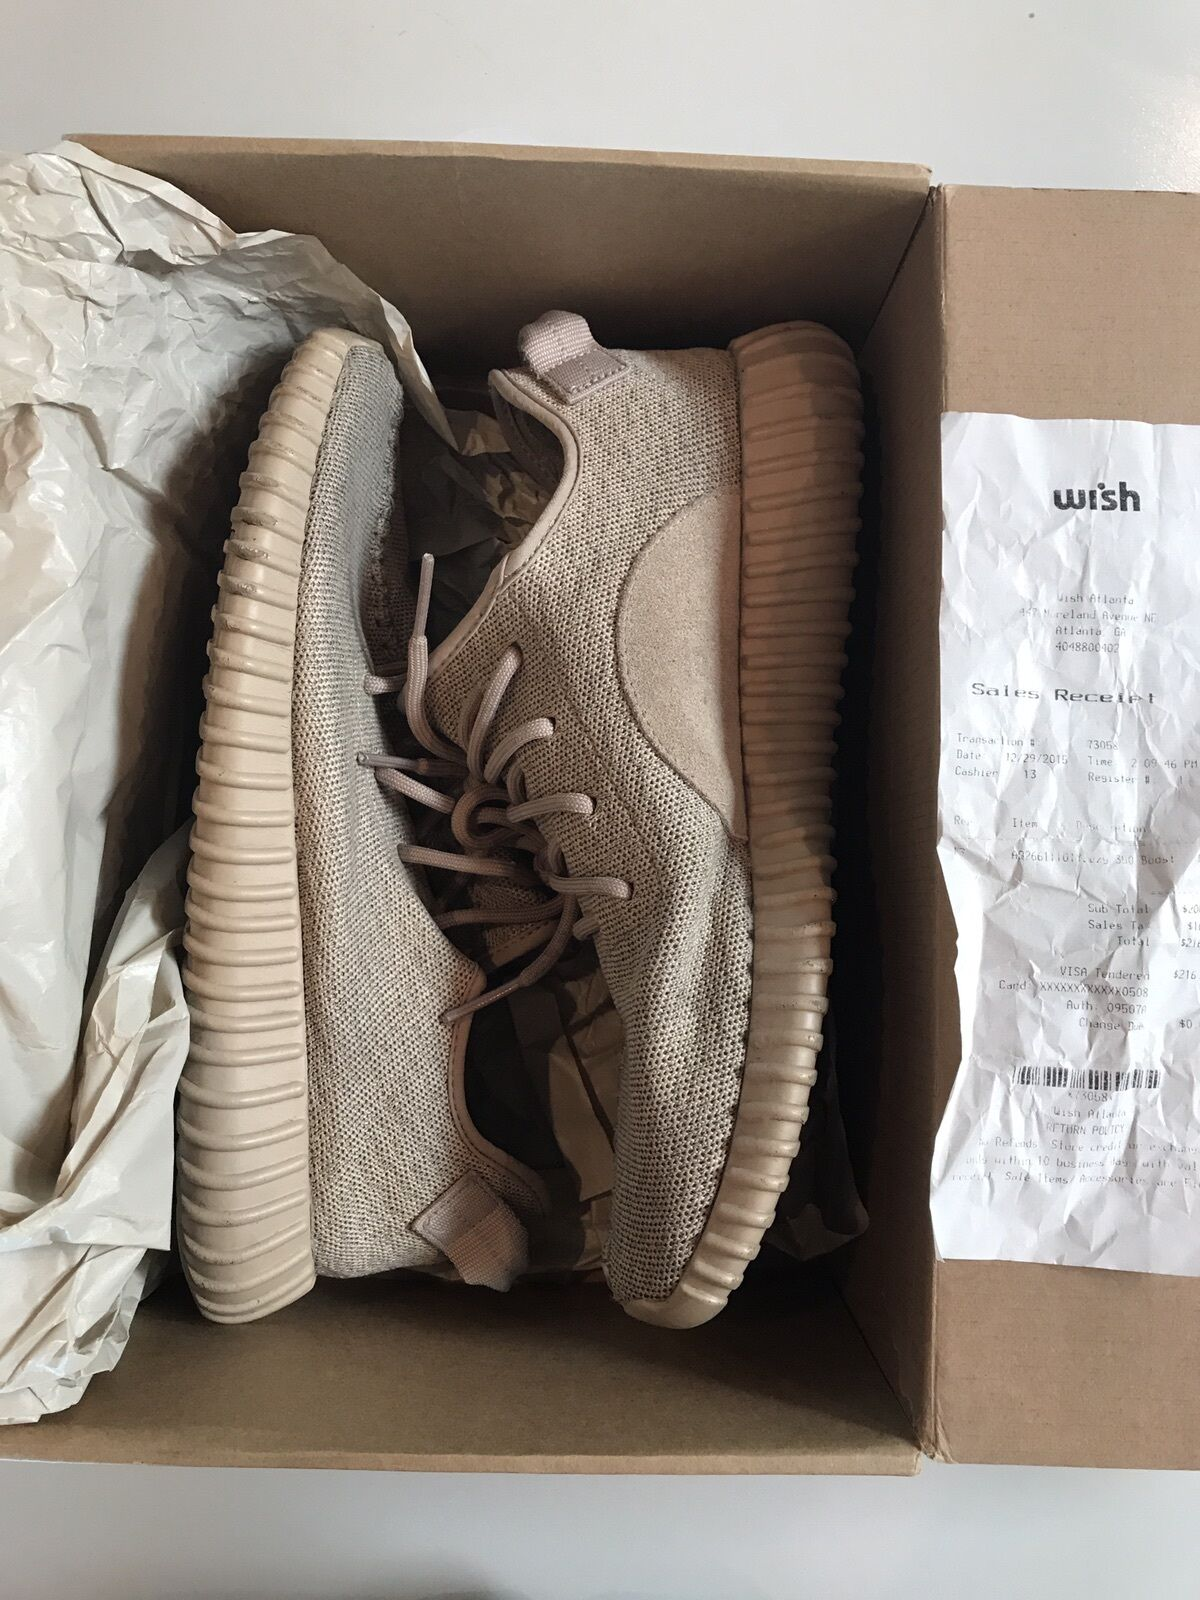 Authentic Adidas Yeezy Boost 350 Oxford Tan Comfortable